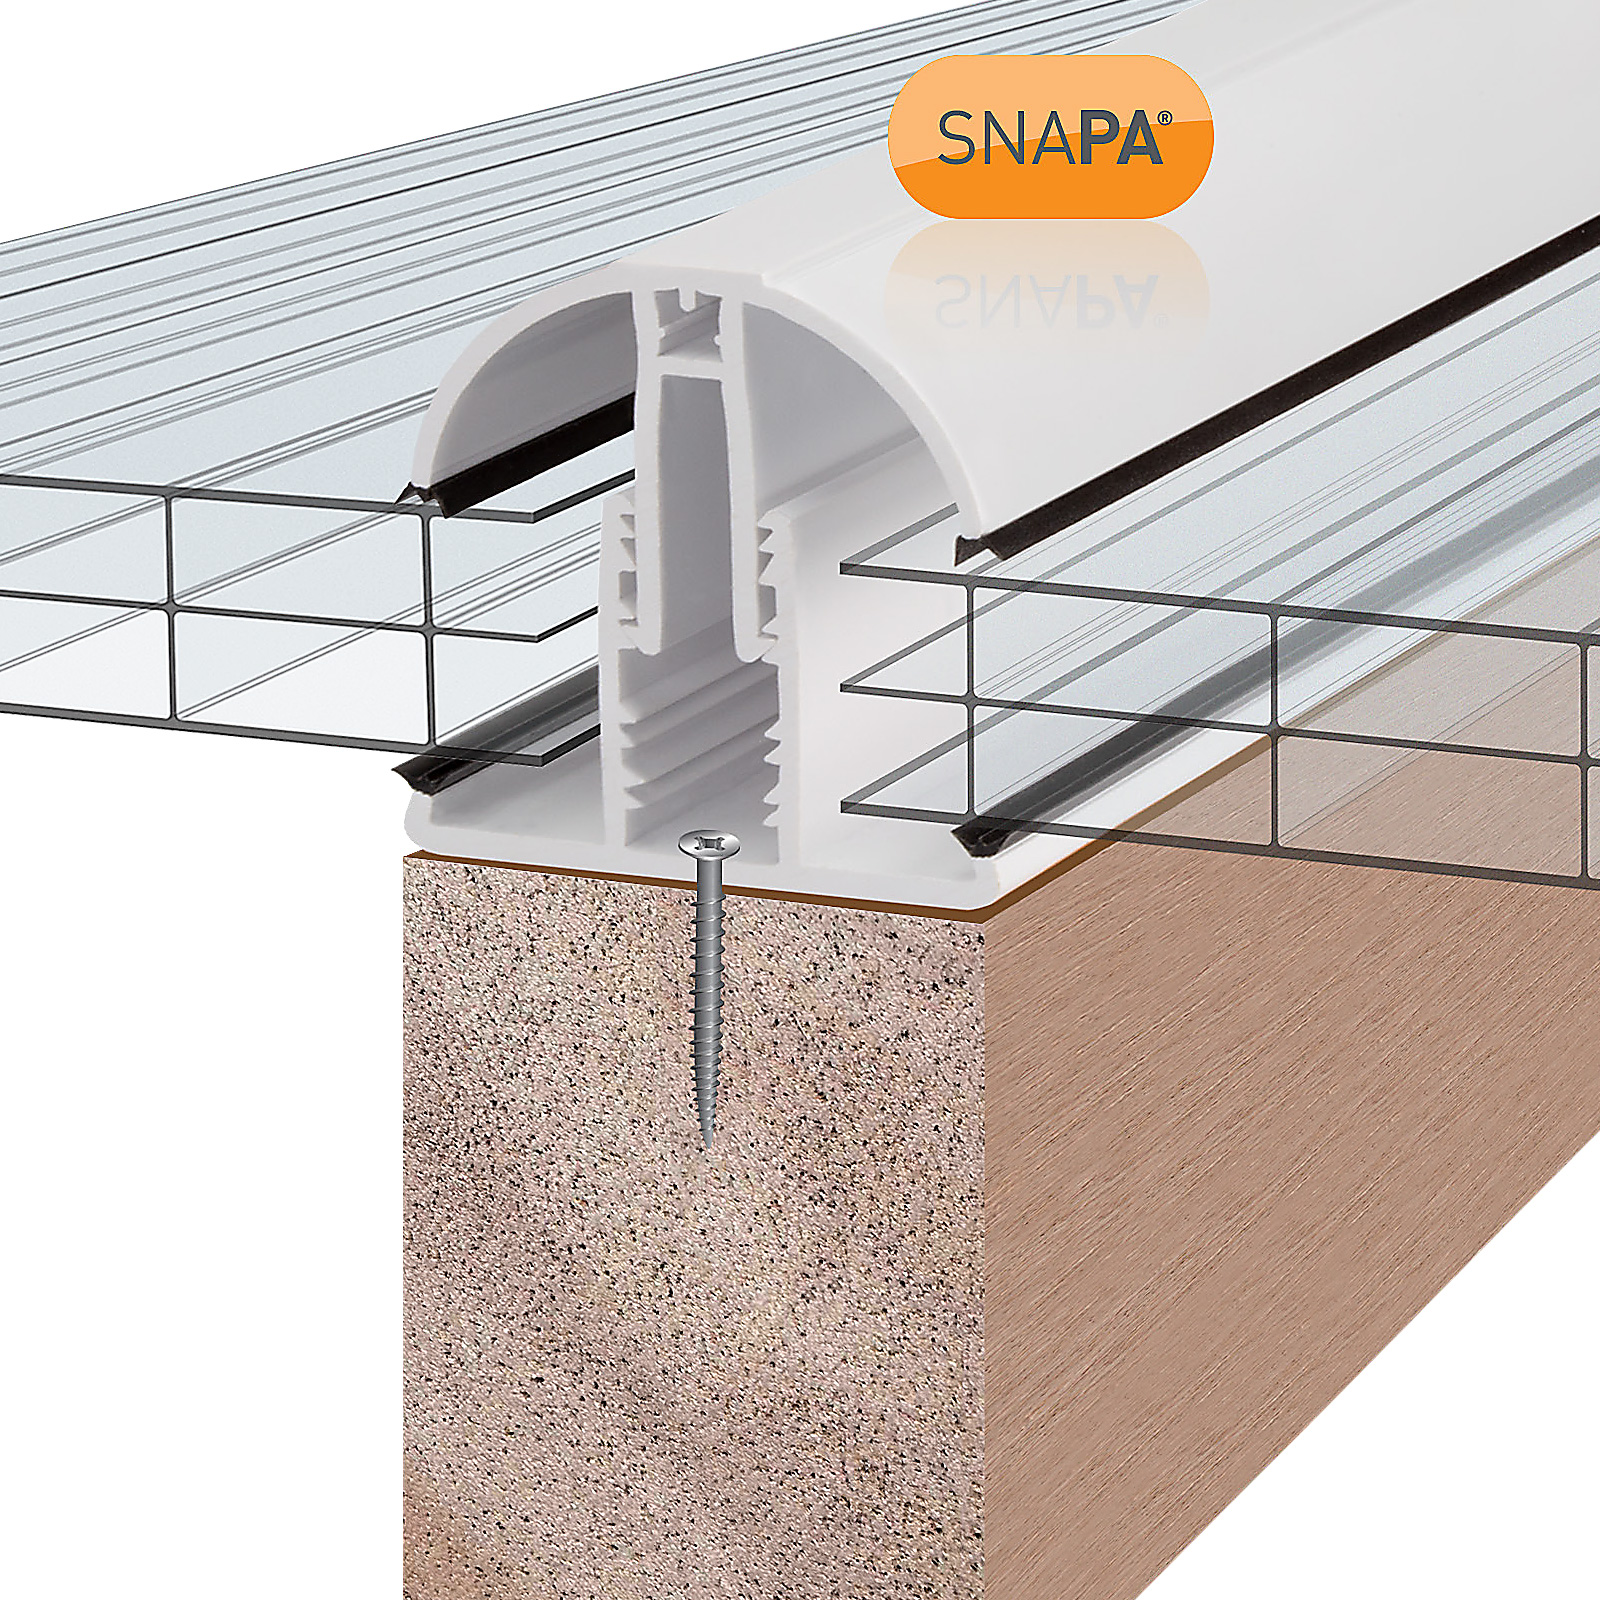 2m White SNAPA Snap-Fix uPVC Plastic Lean-to Gable Starter Glazing Bar for Timber Rafters